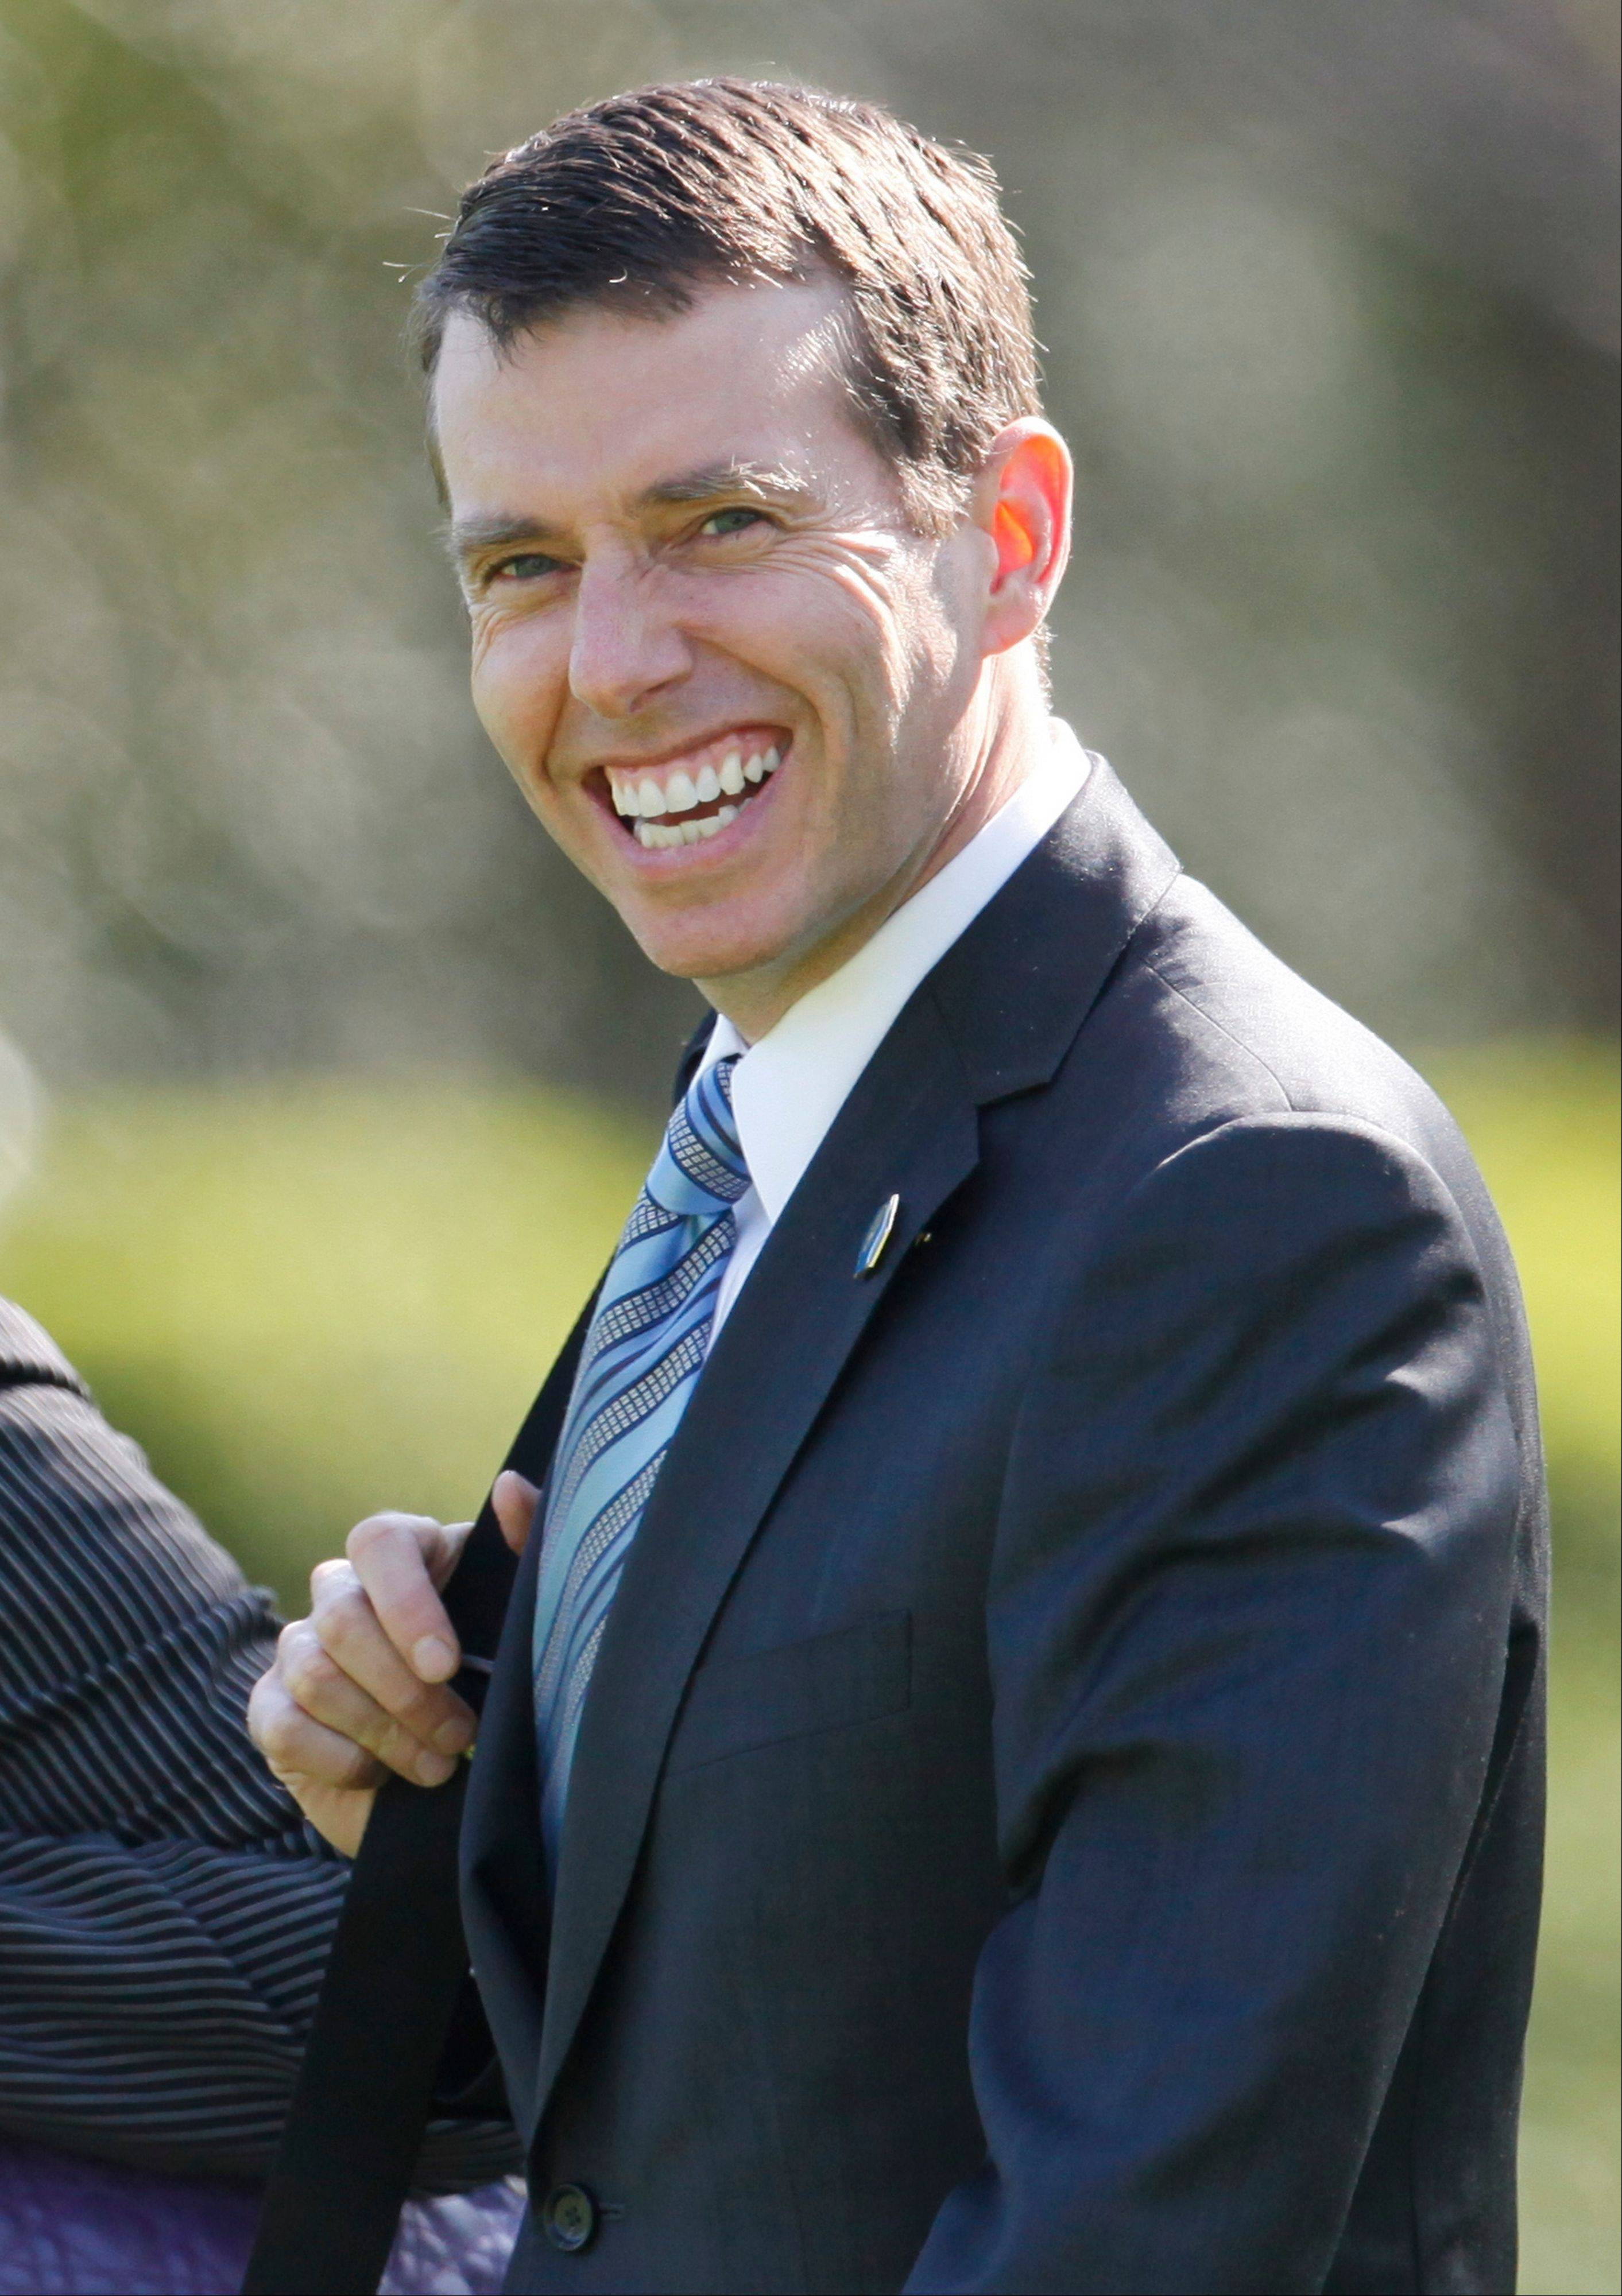 This photo taken April 14, 2011, shows senior adviser David Plouffe on the South Lawn of the White House as he accompanies President Barack Obama to Chicago. Obama's 2008 campaign manager is helping shape the president's re-election strategy from the West Wing. The Delaware native returned to Obama's side after Democrats lost control of the House in the 2010 elections and is arguably the most important person in melding Obama's policies with politics.